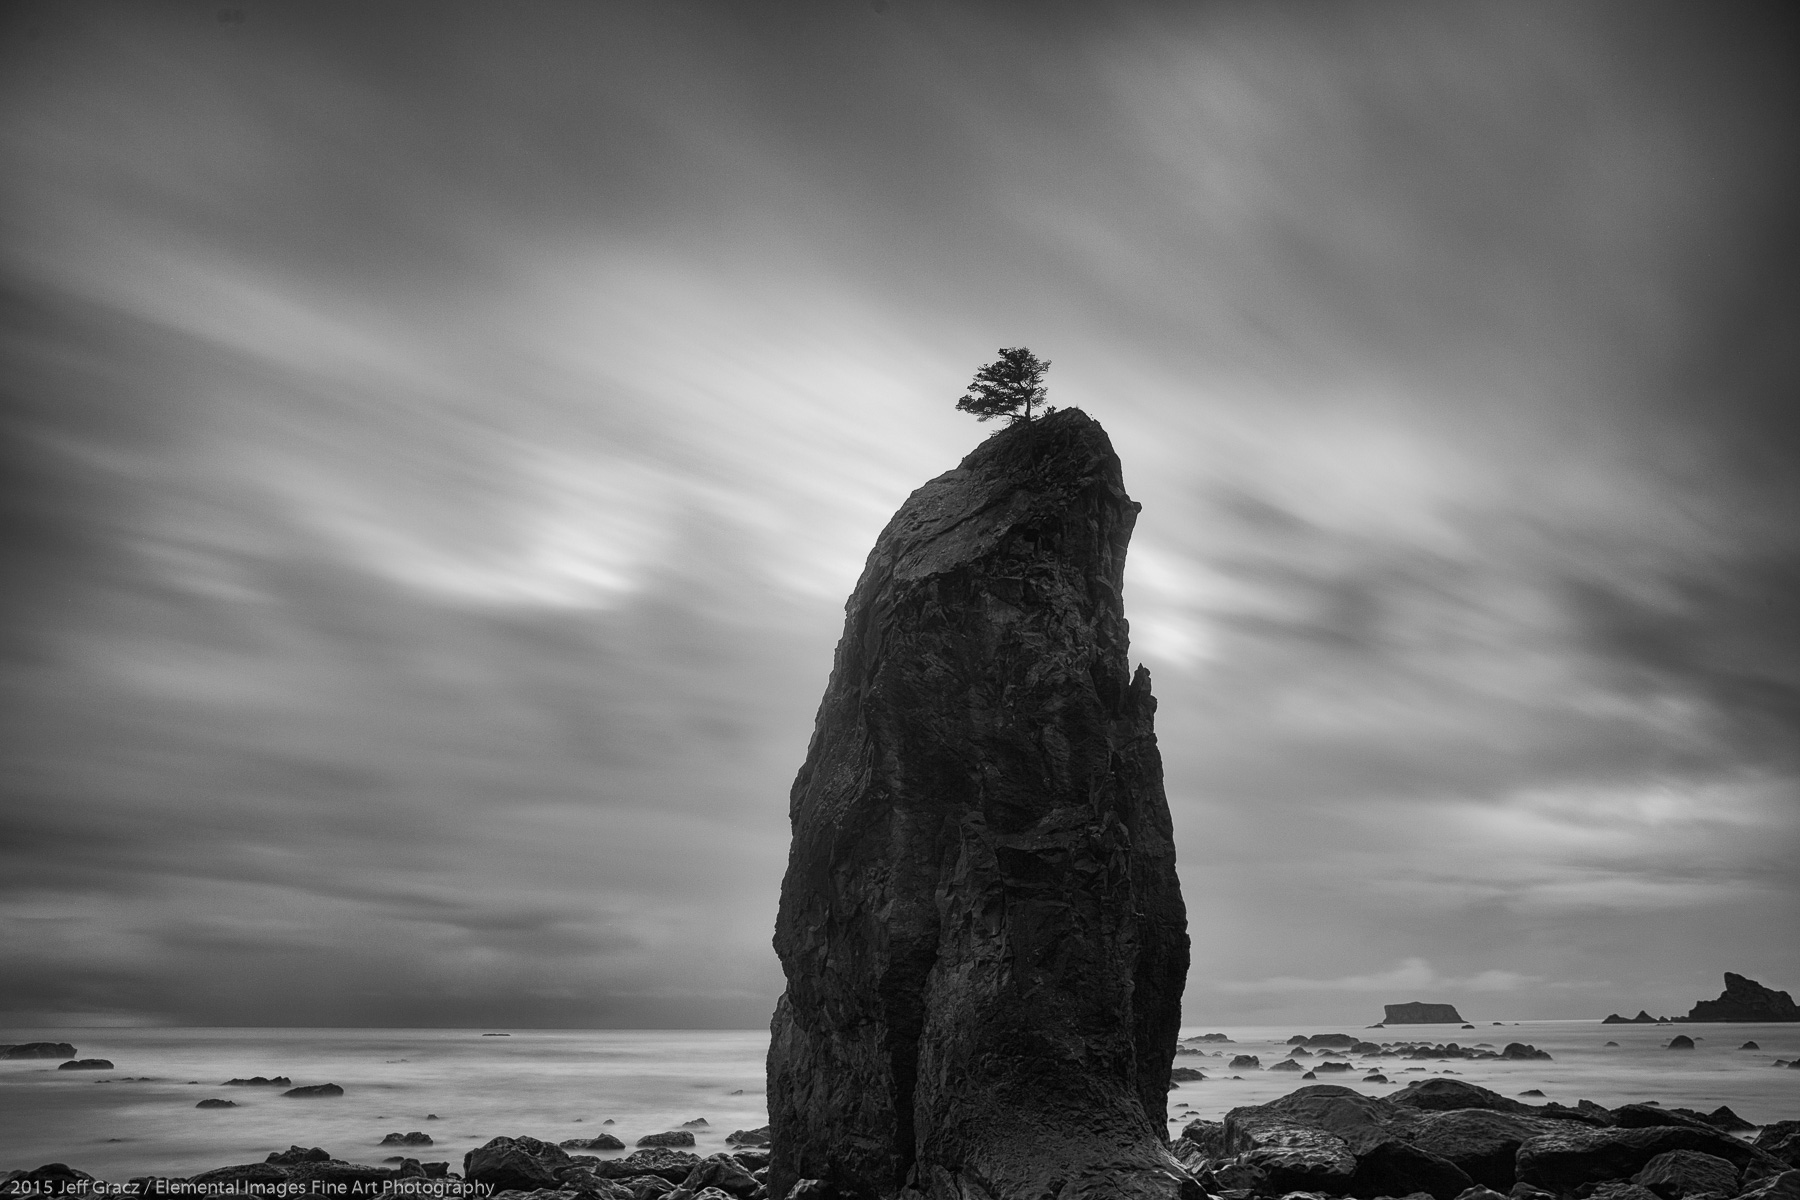 Lone tree with sea stack   Olympic National Park   WA   USA - © 2015 Jeff Gracz / Elemental Images Fine Art Photography - All Rights Reserved Worldwide